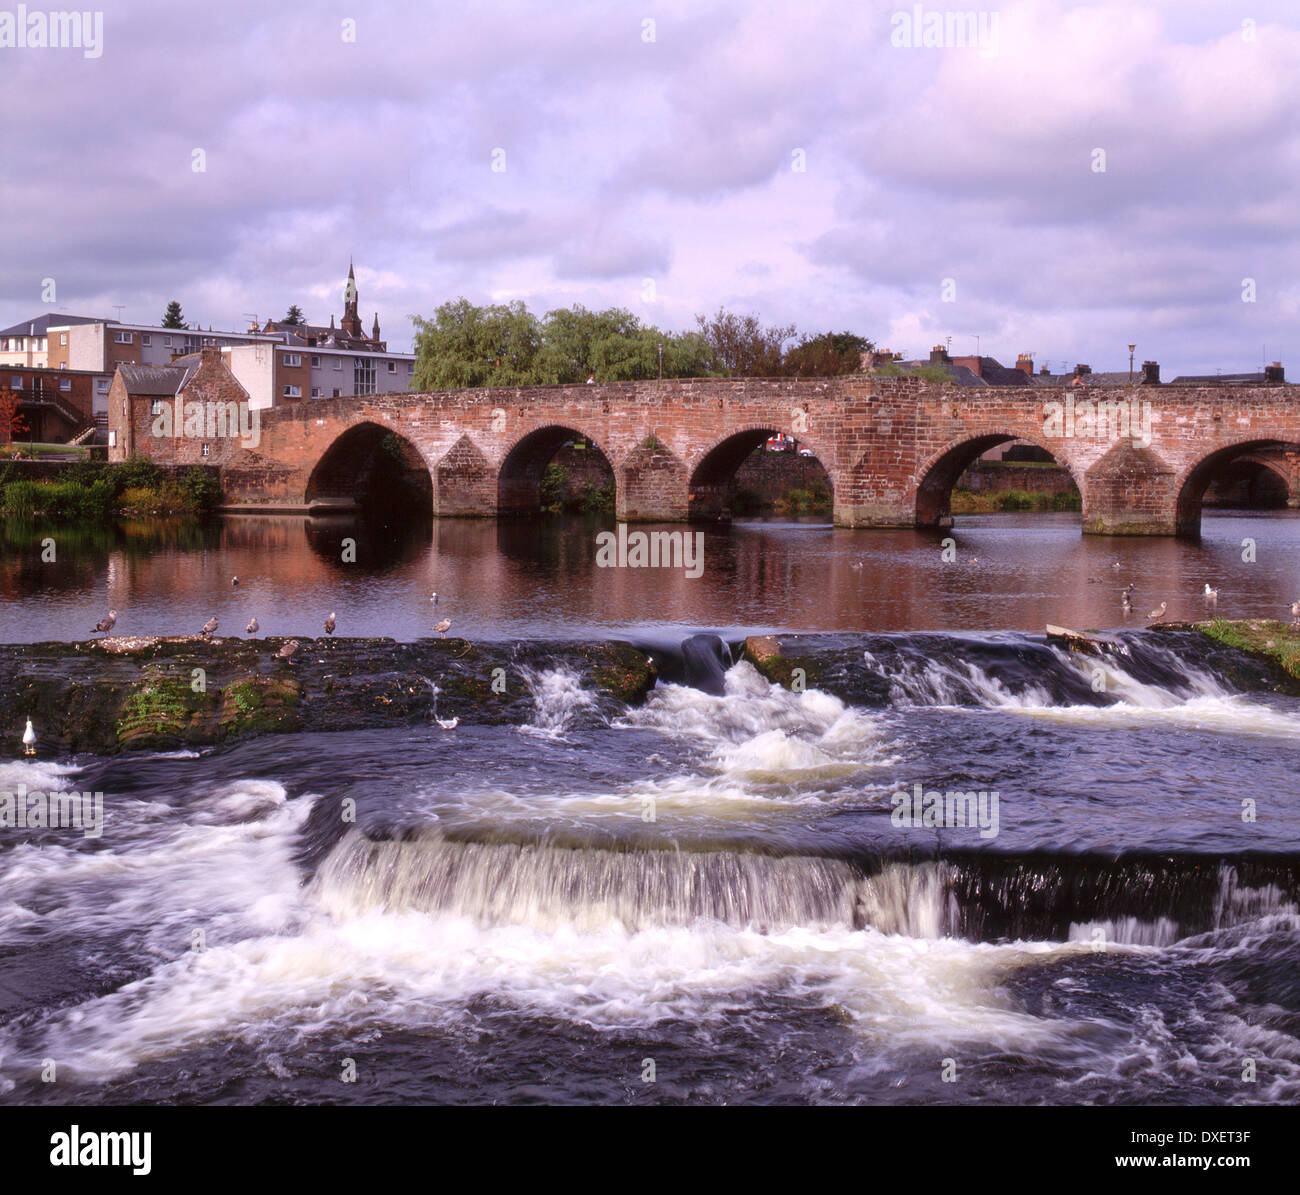 The River Nithe and the old bridge in Dumfries, Dumfrieshire. - Stock Image